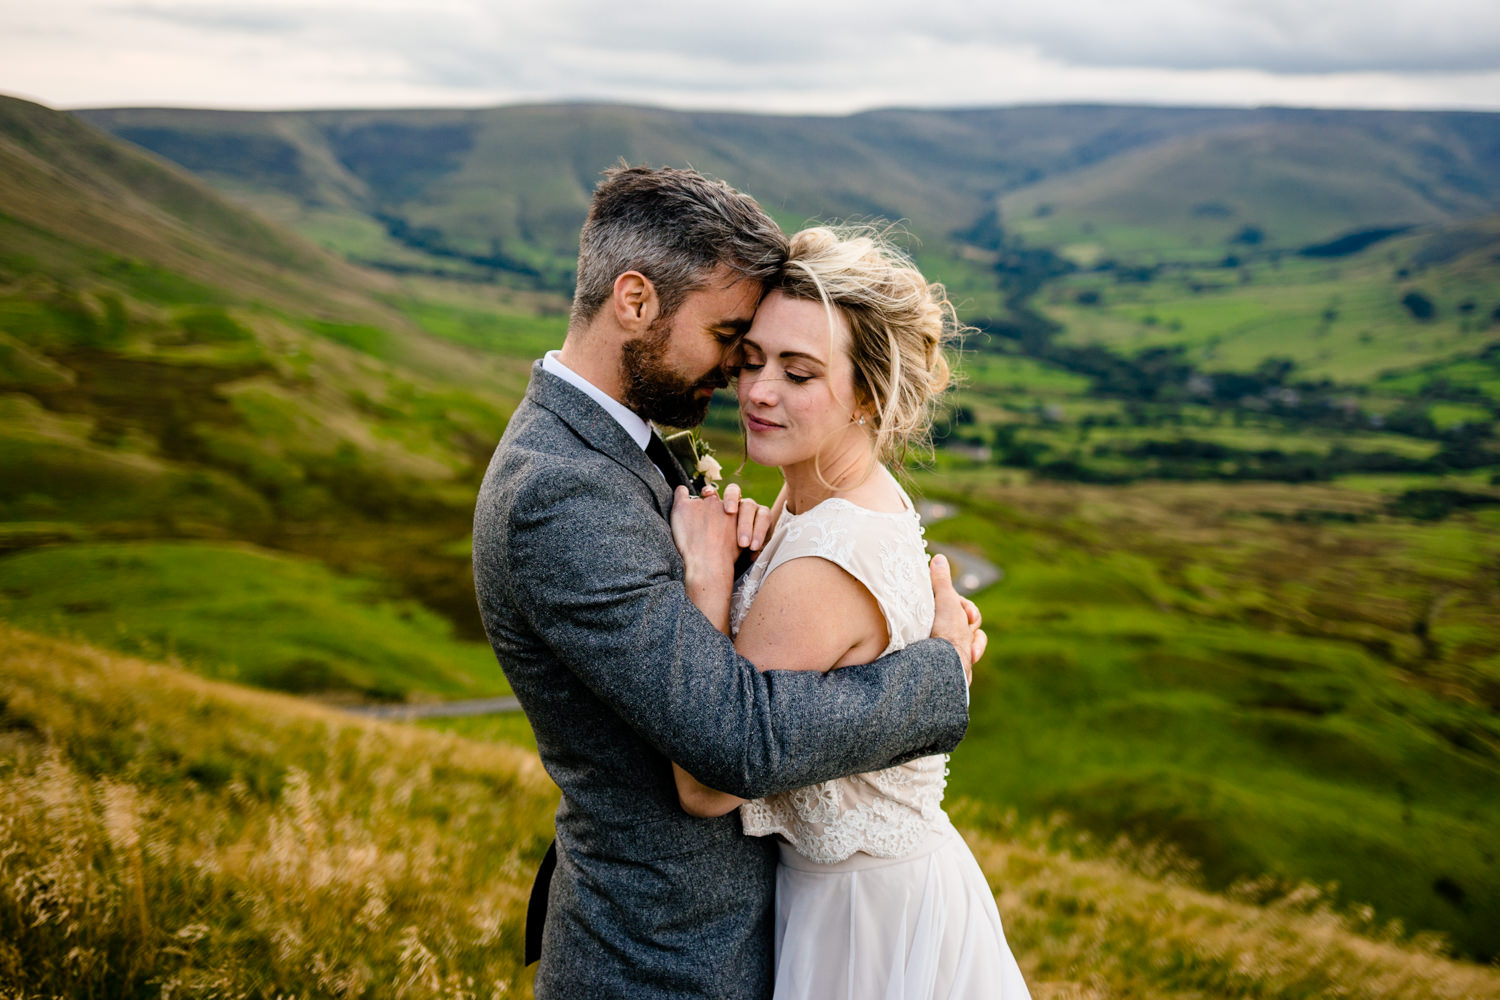 Peak-District-Wedding-Photography-10.jpg